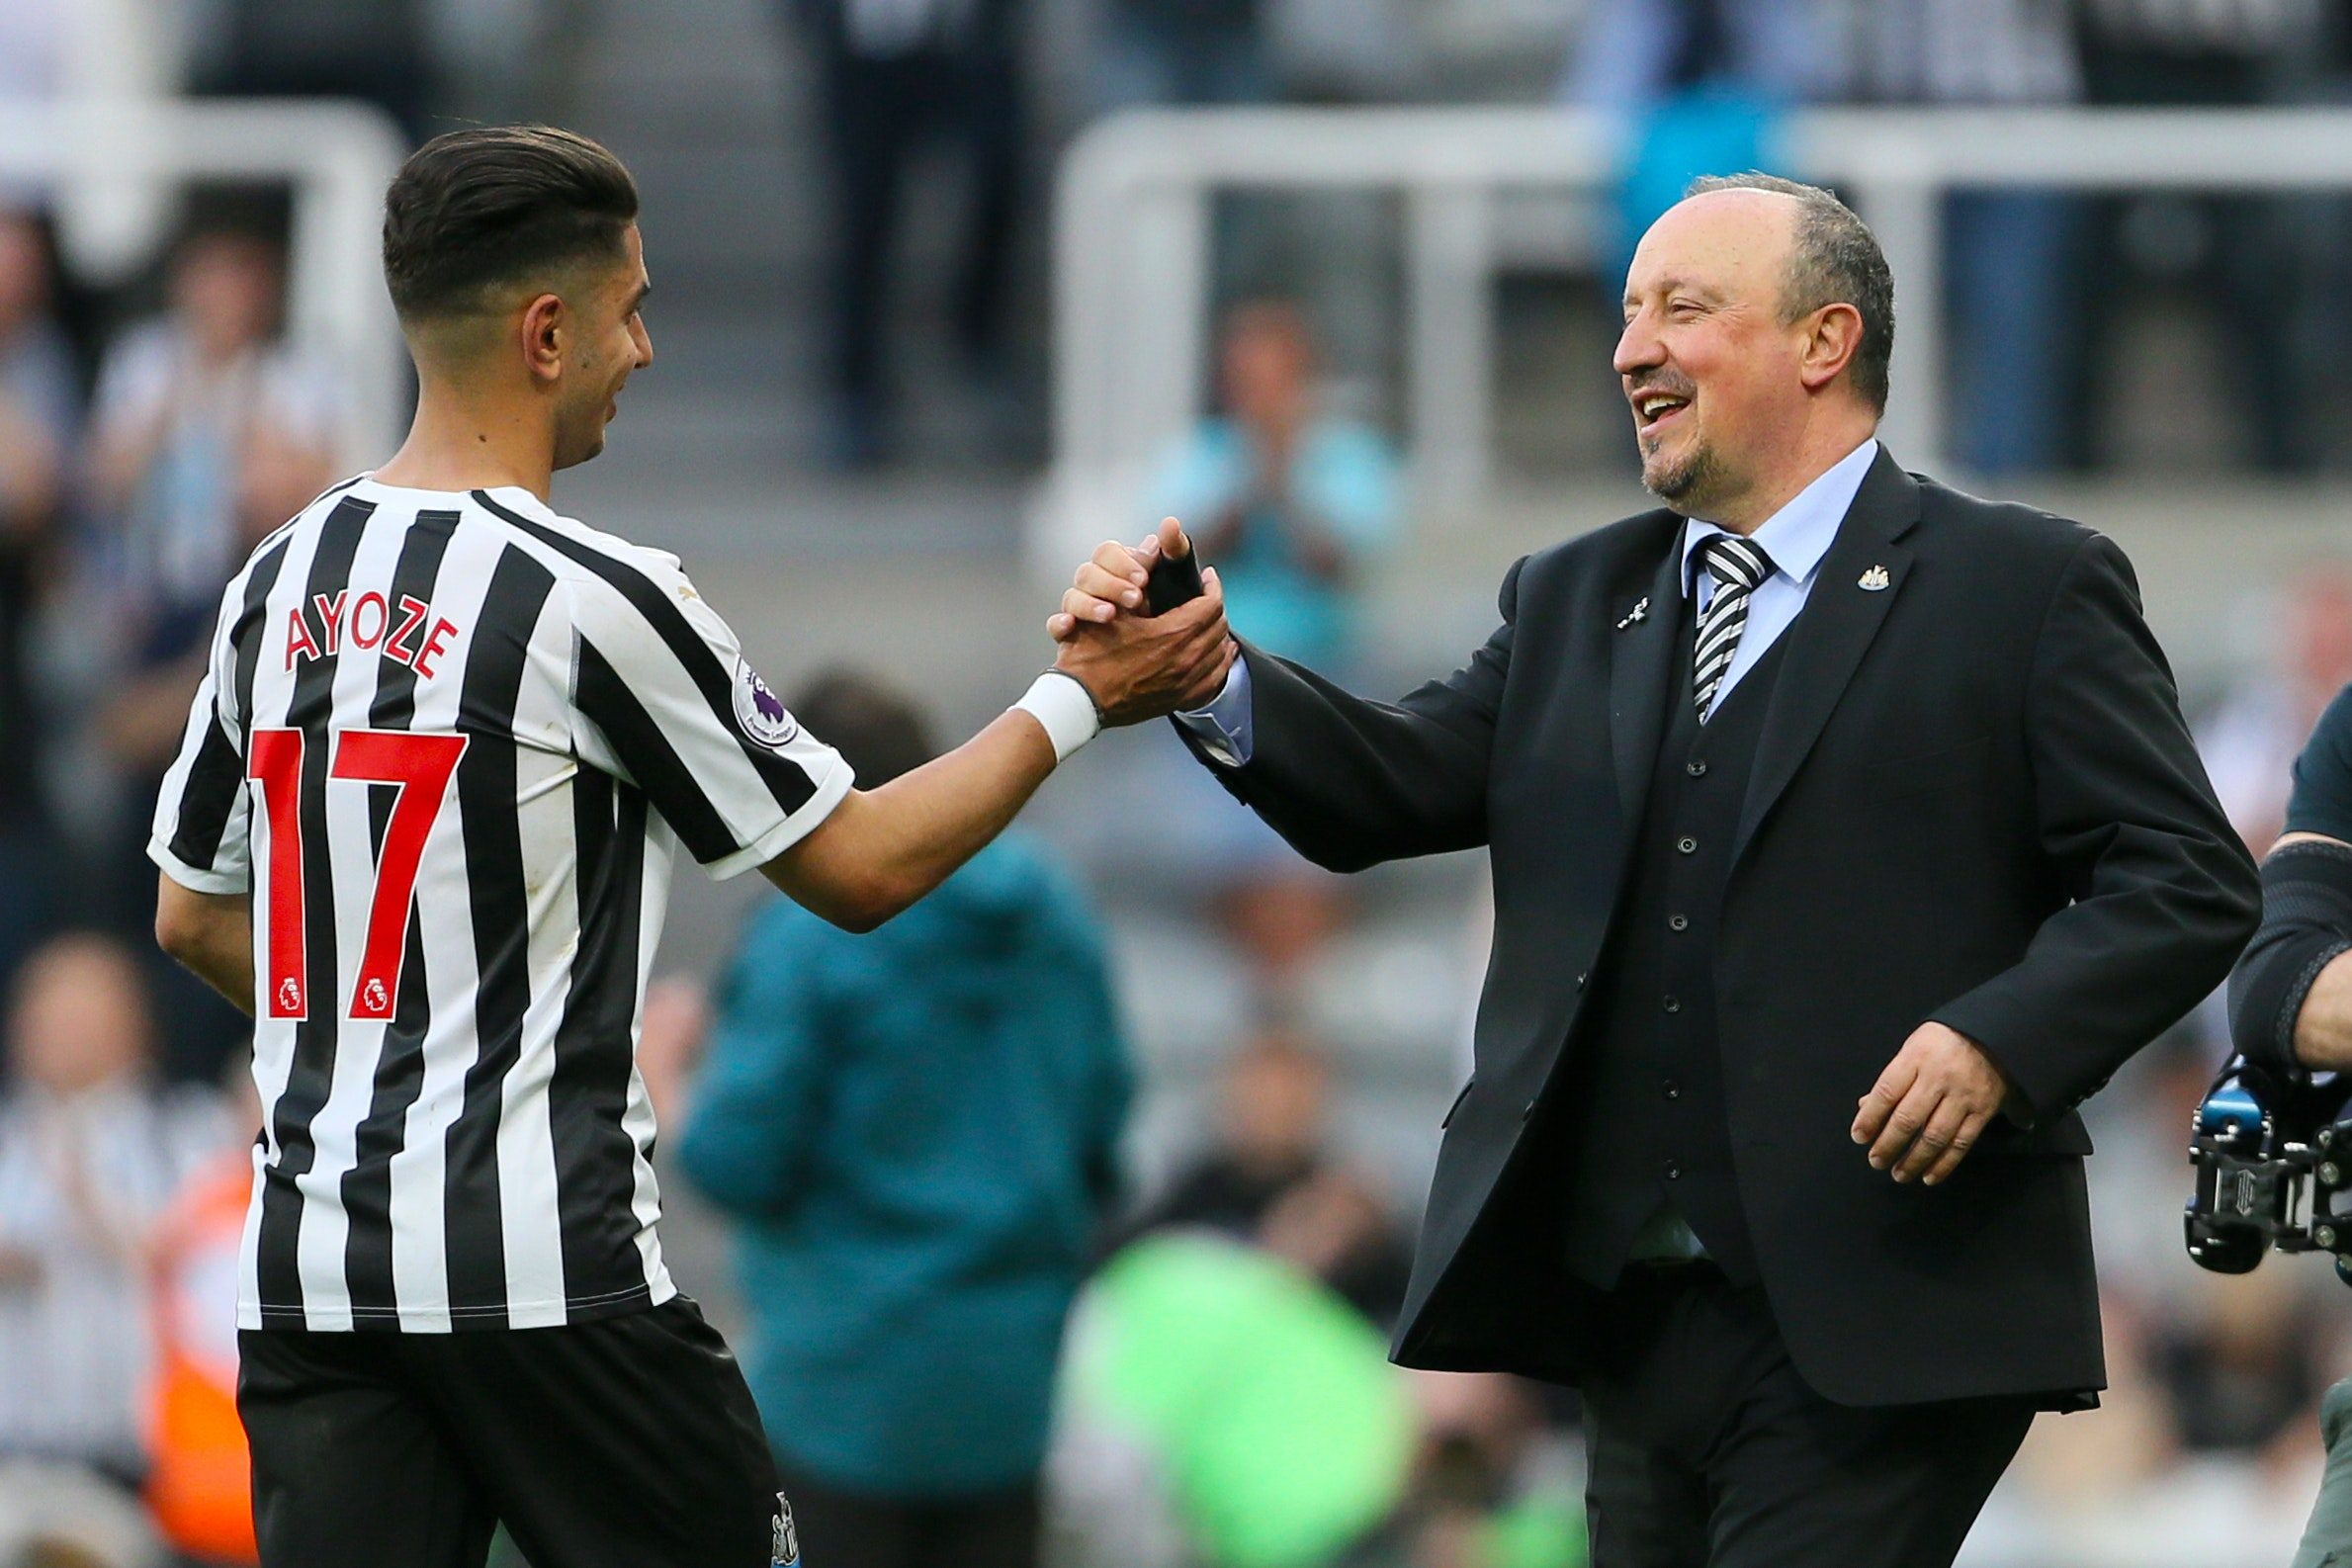 Newcastle manager Rafael Benitez celebrates with match-winner Ayoze Perez